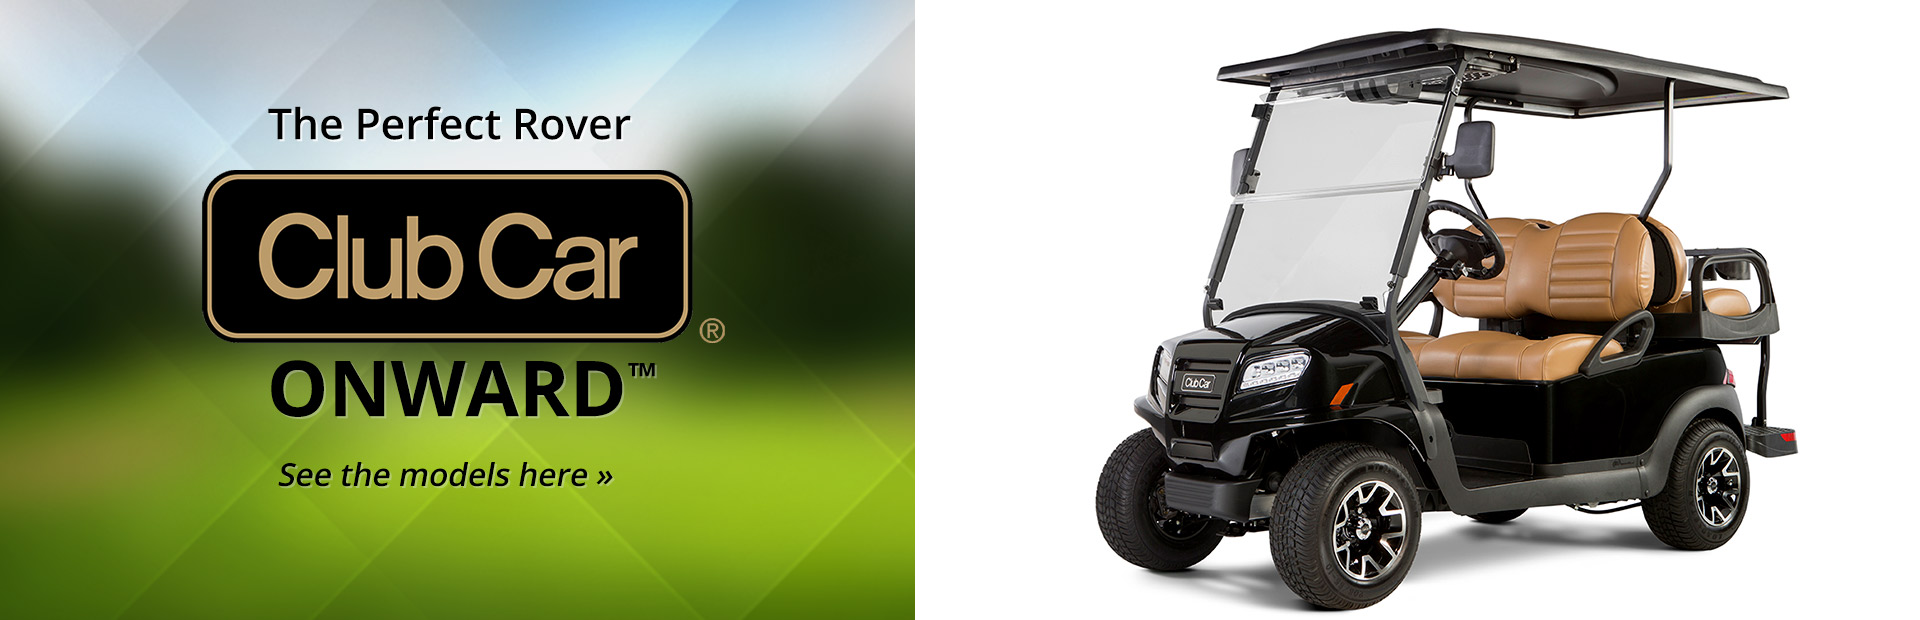 Club Car Onward™: Click here for details.